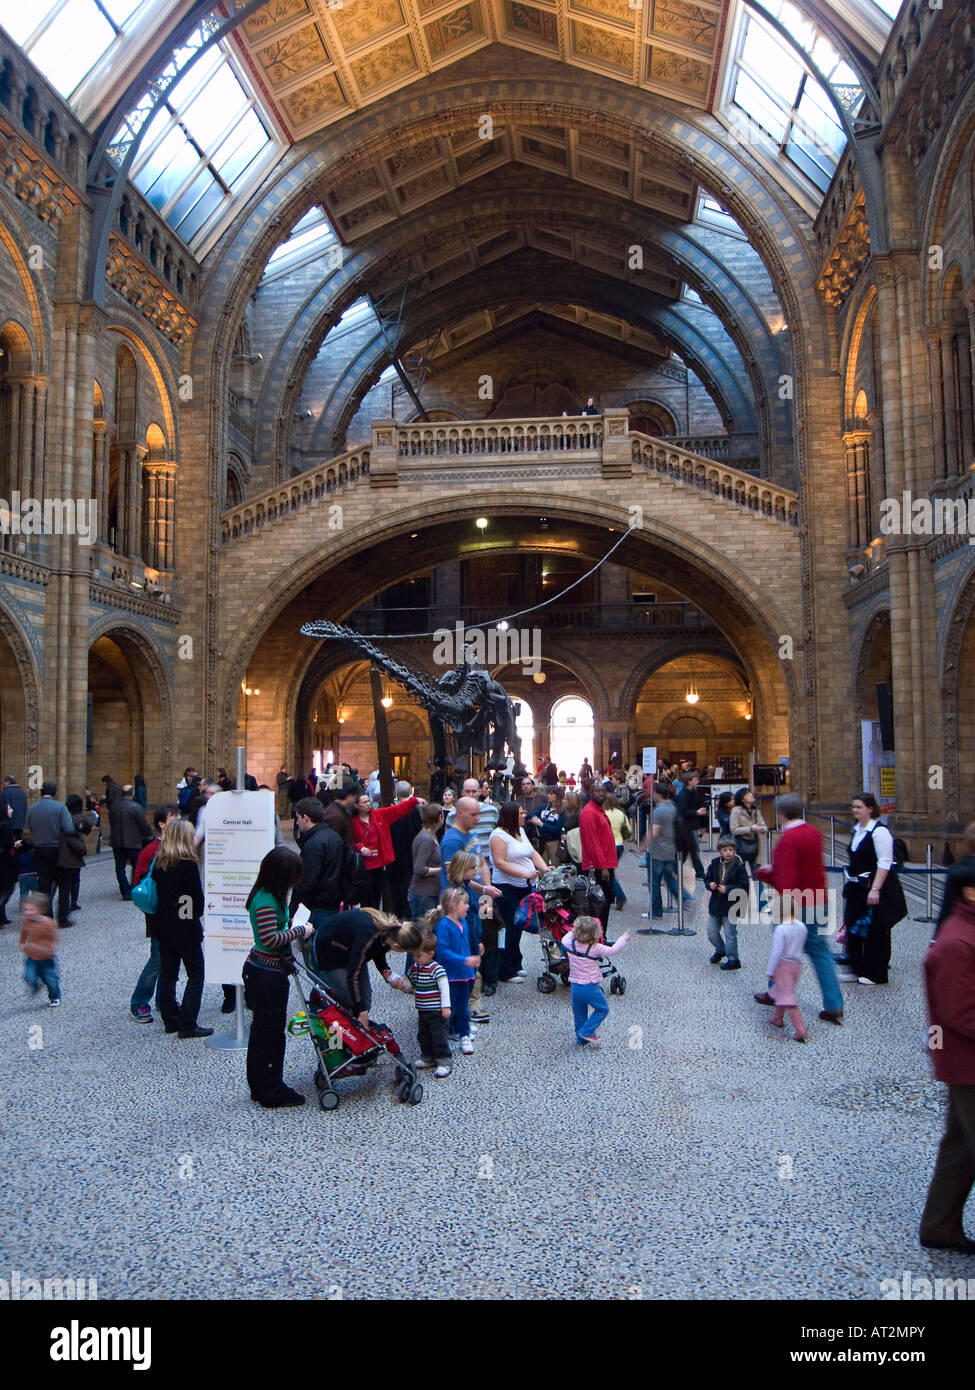 Visitors in the interior of the Central Hall in the Waterhouse Building at the Natural History Museum, London - Stock Image